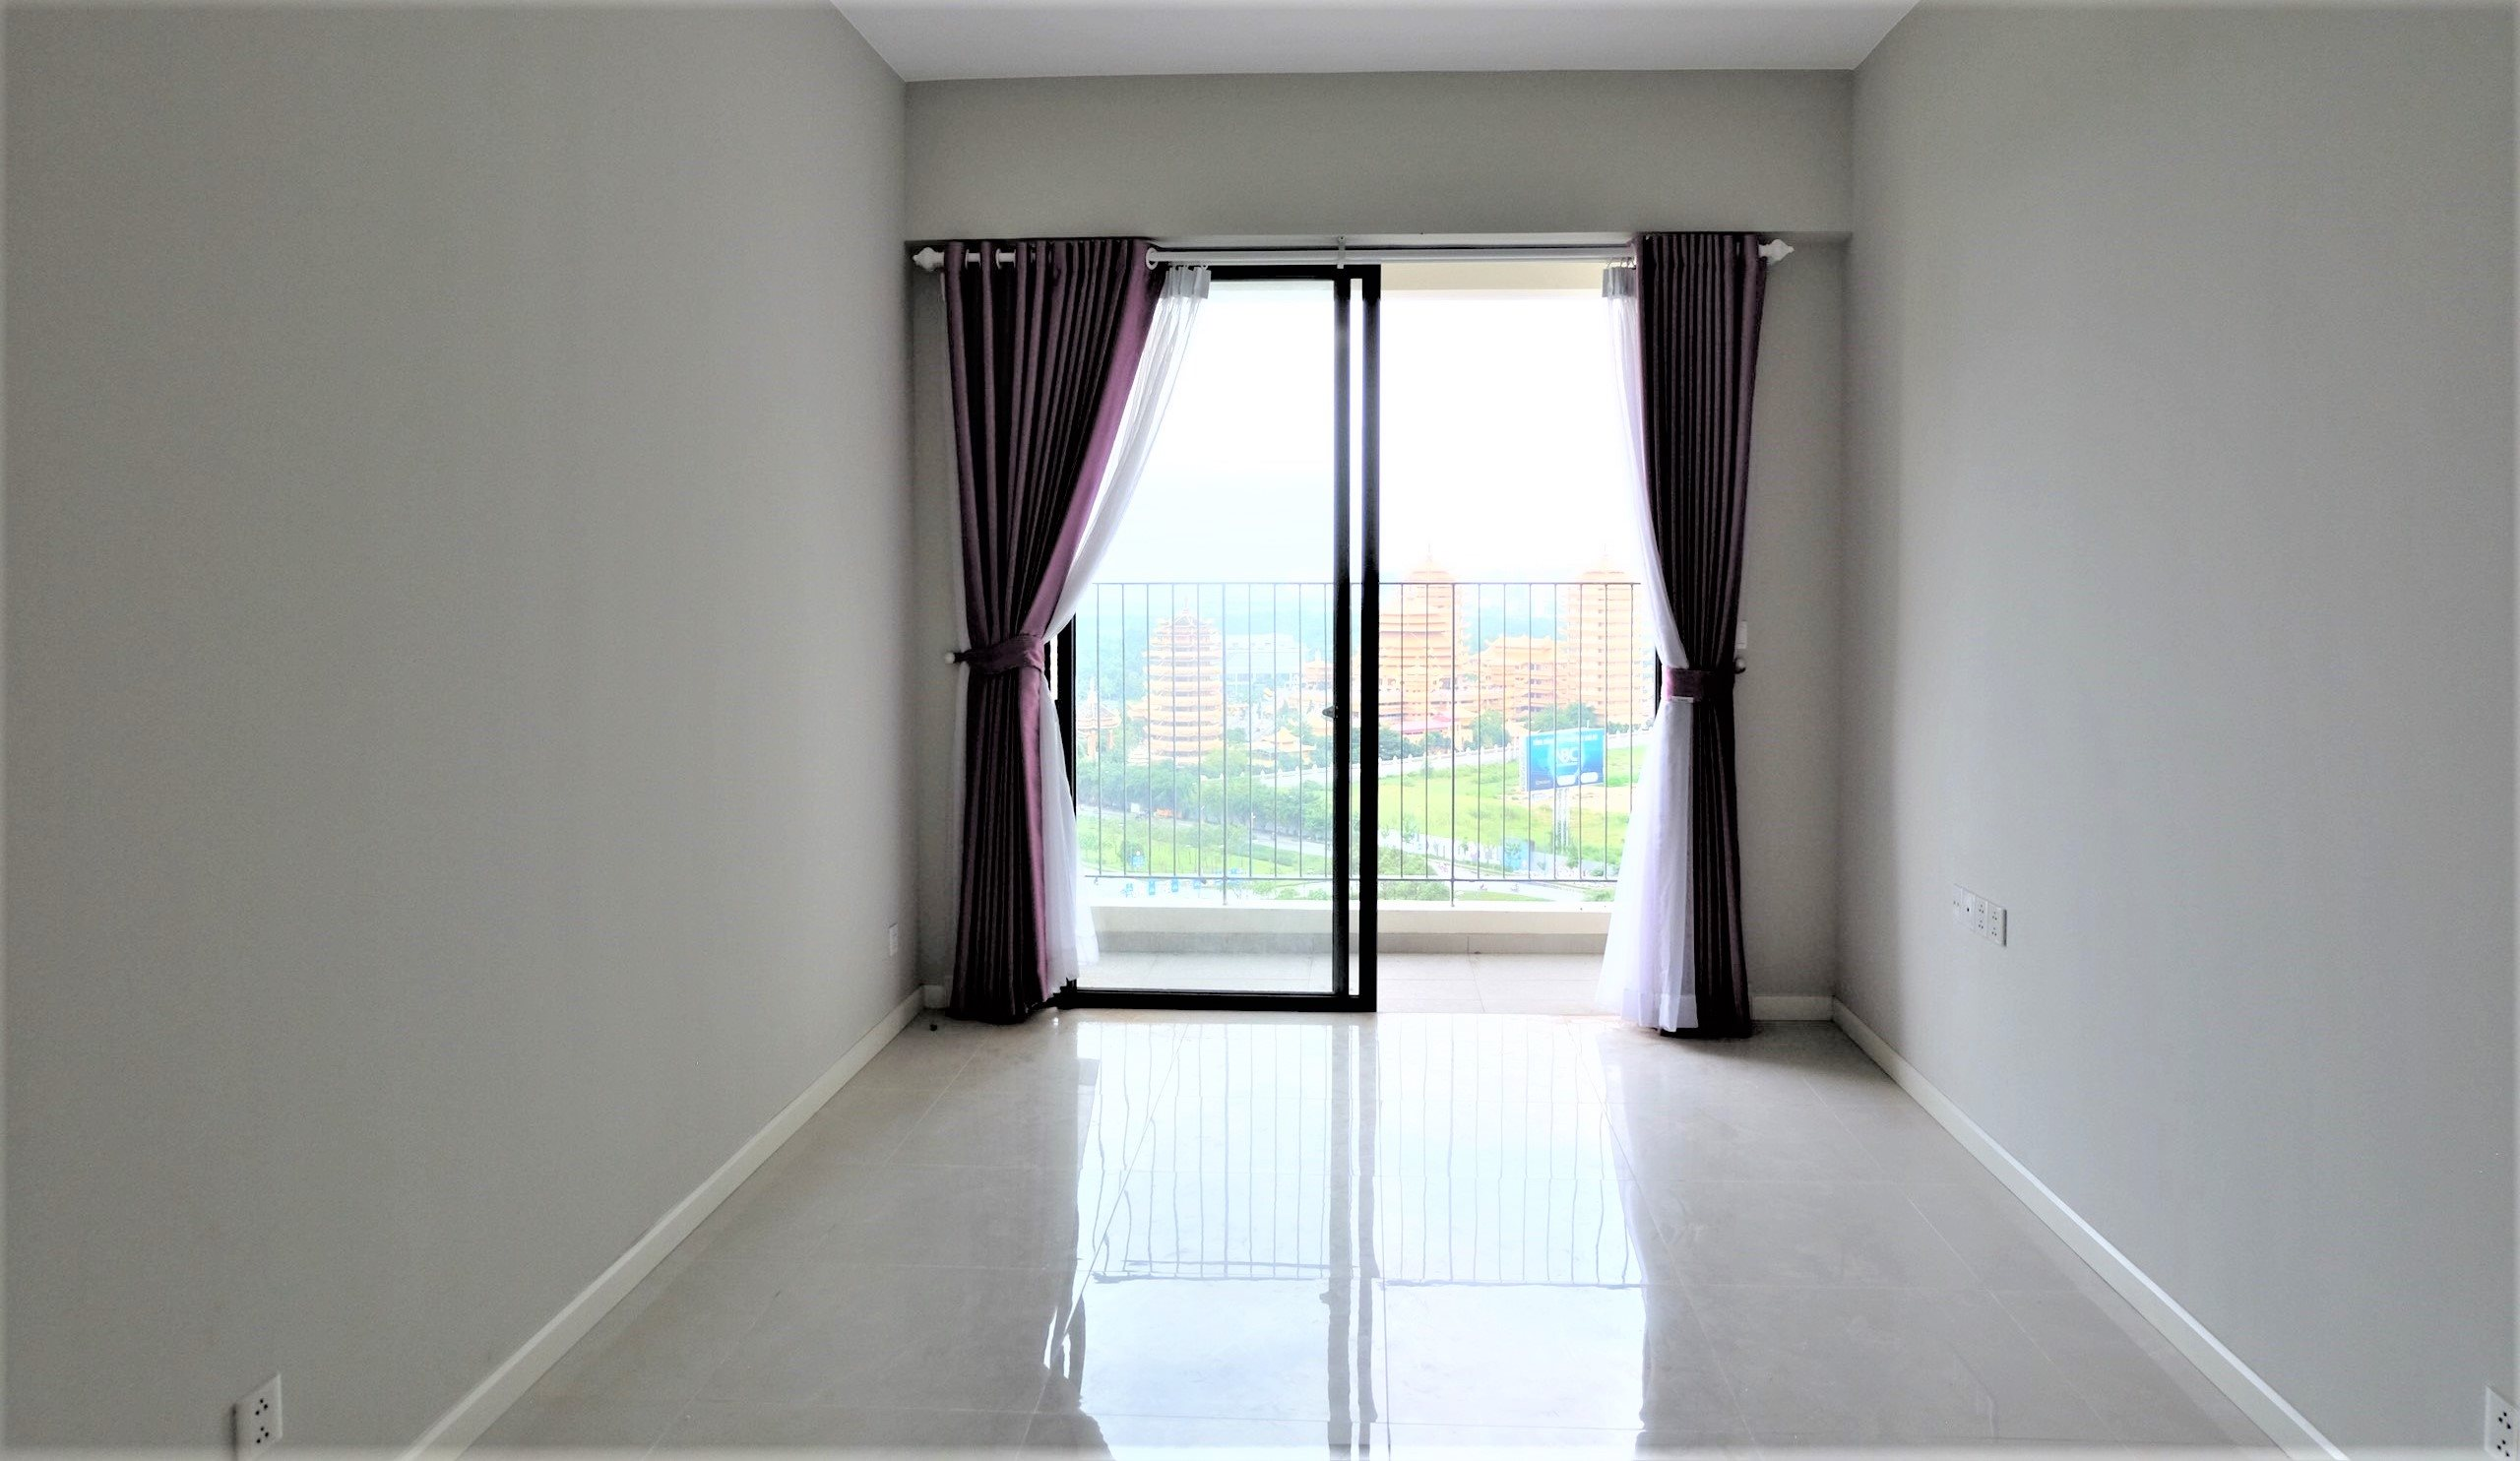 D229855 - Apartment for rent - Masteri An Phu - 1 bedroom